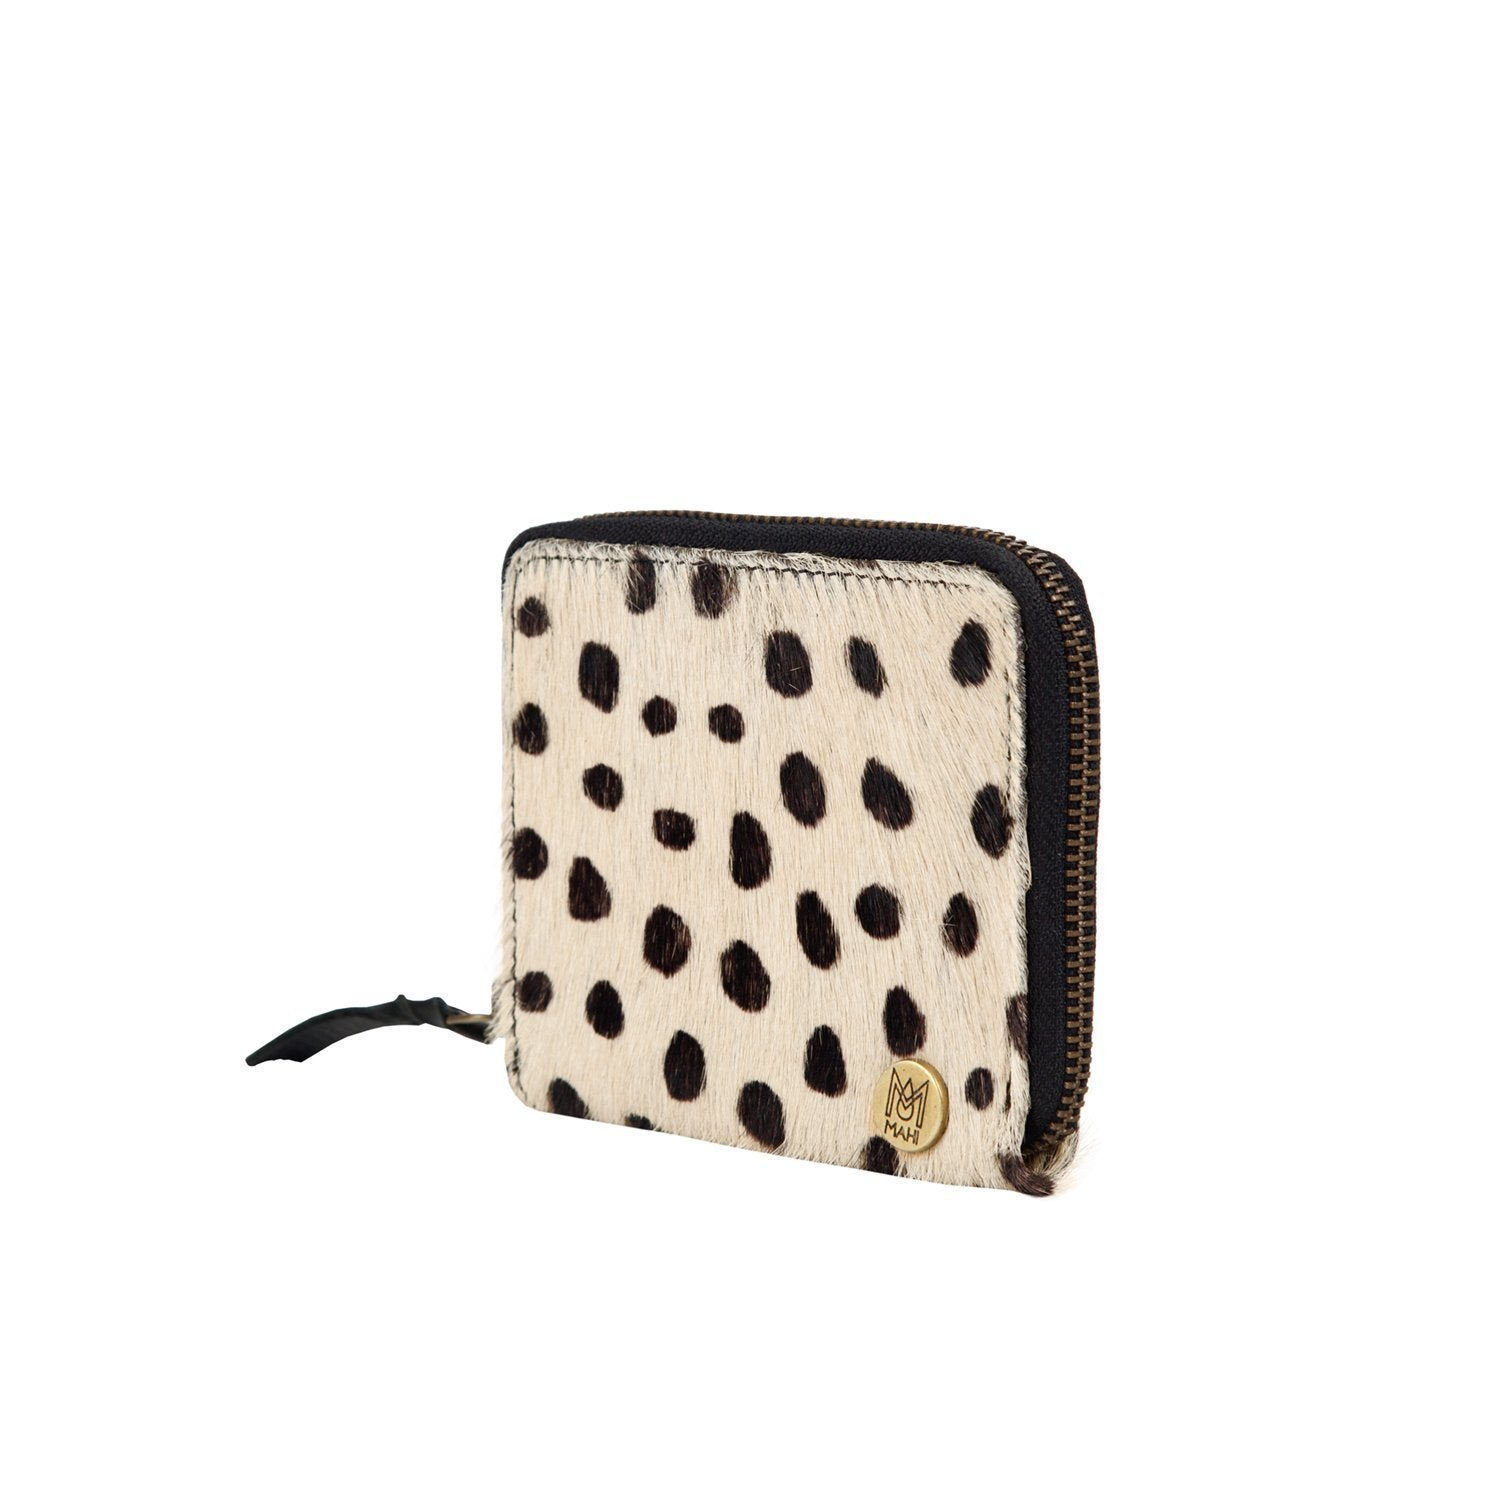 The Coin Purse-MAHI LEATHER-HOUSE of BOTTA